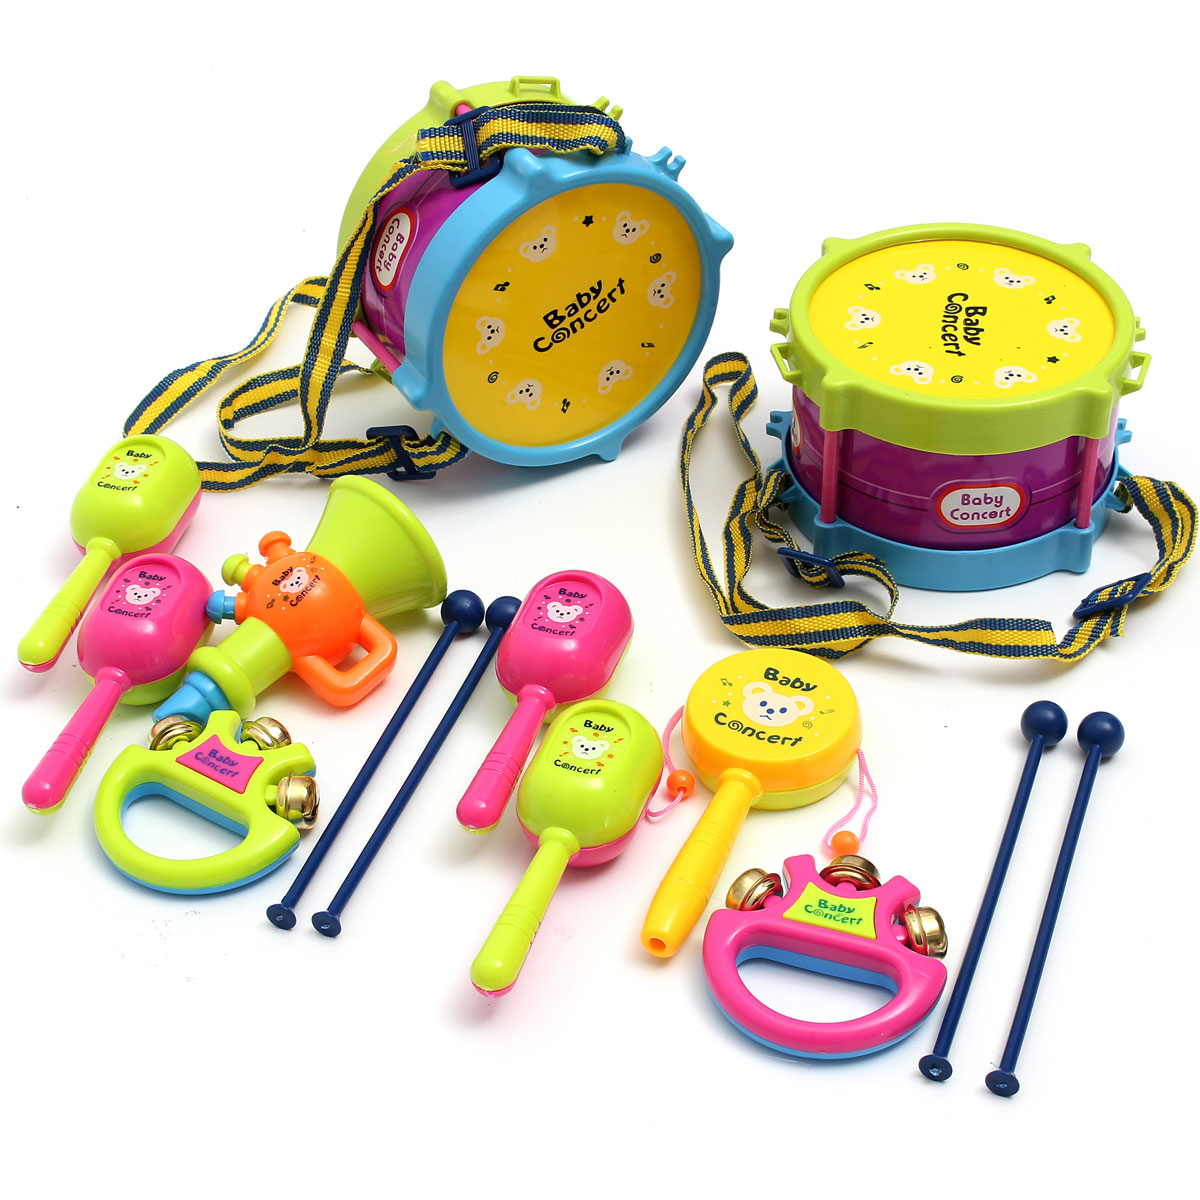 5Pcs Unisex Boys Girls Drum Musical Instruments Roll Kits Kids Rock Handbell Hammer Band Musical Toy Gift Set